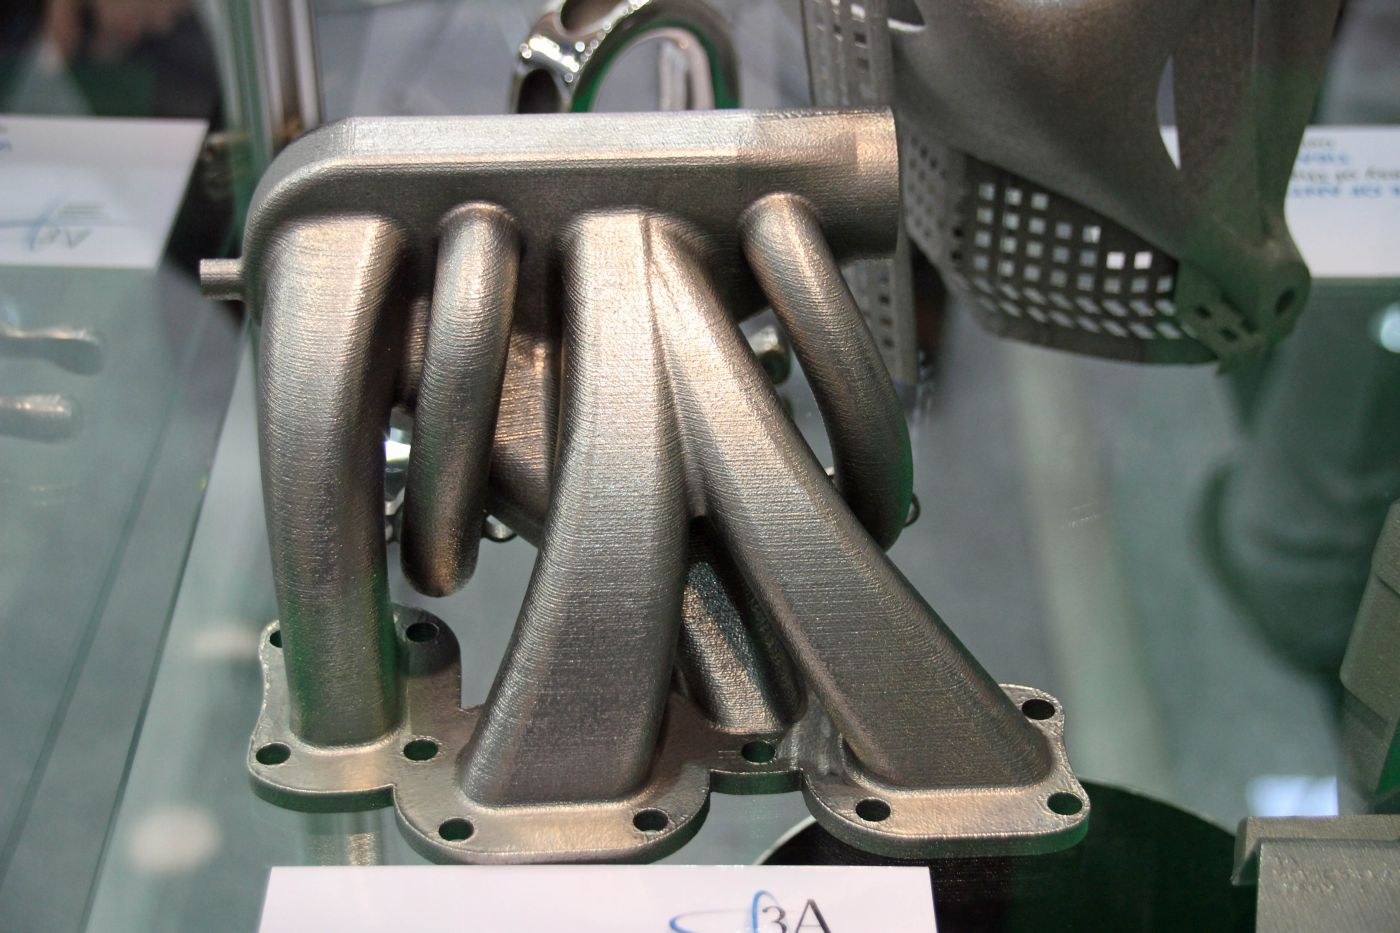 Designregels, safety en quality normen in UL workshops tijdens Additive Manufacturing Europe